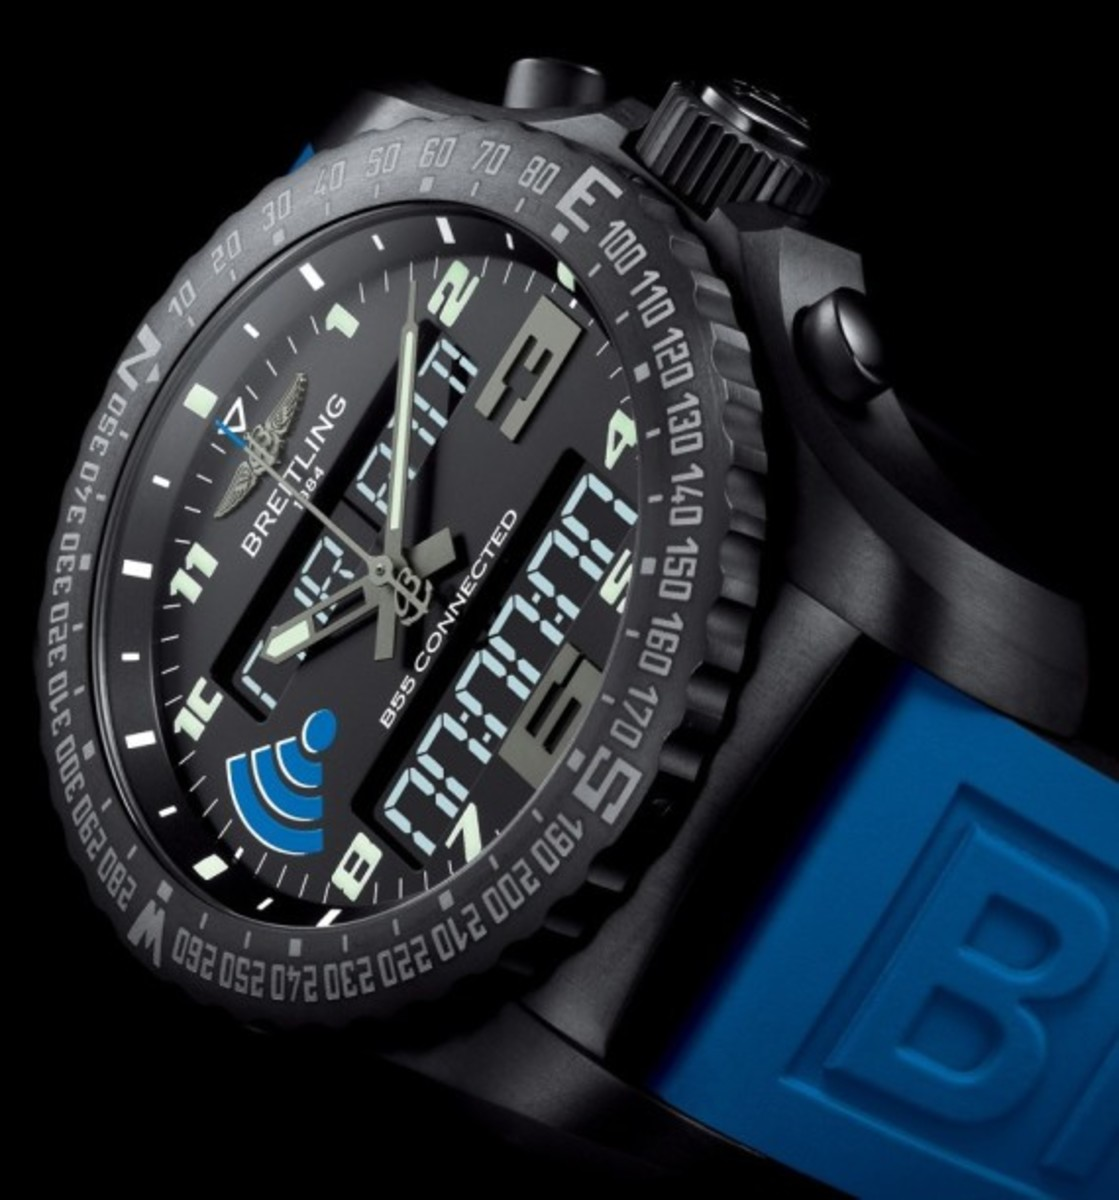 Breitling B55 Connected Watch Pairs with your Phone - 1